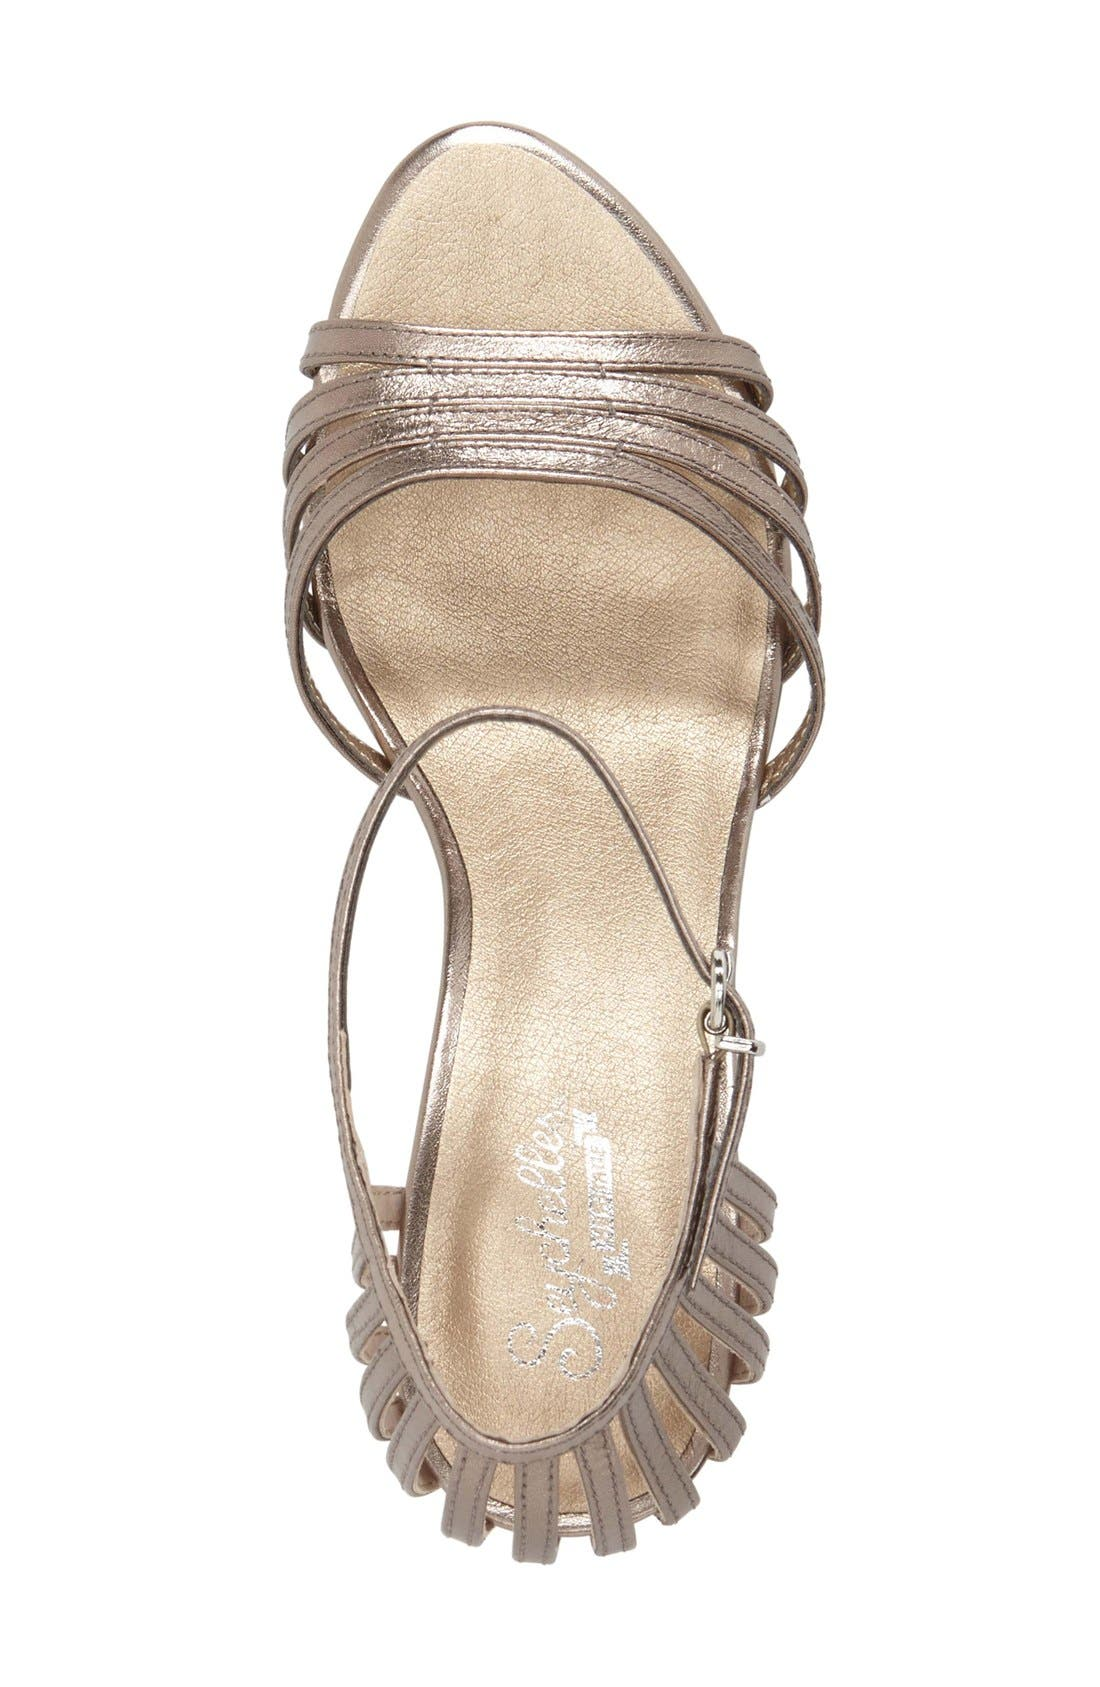 'Song and Dance' Ankle Strap Pump,                             Alternate thumbnail 3, color,                             022